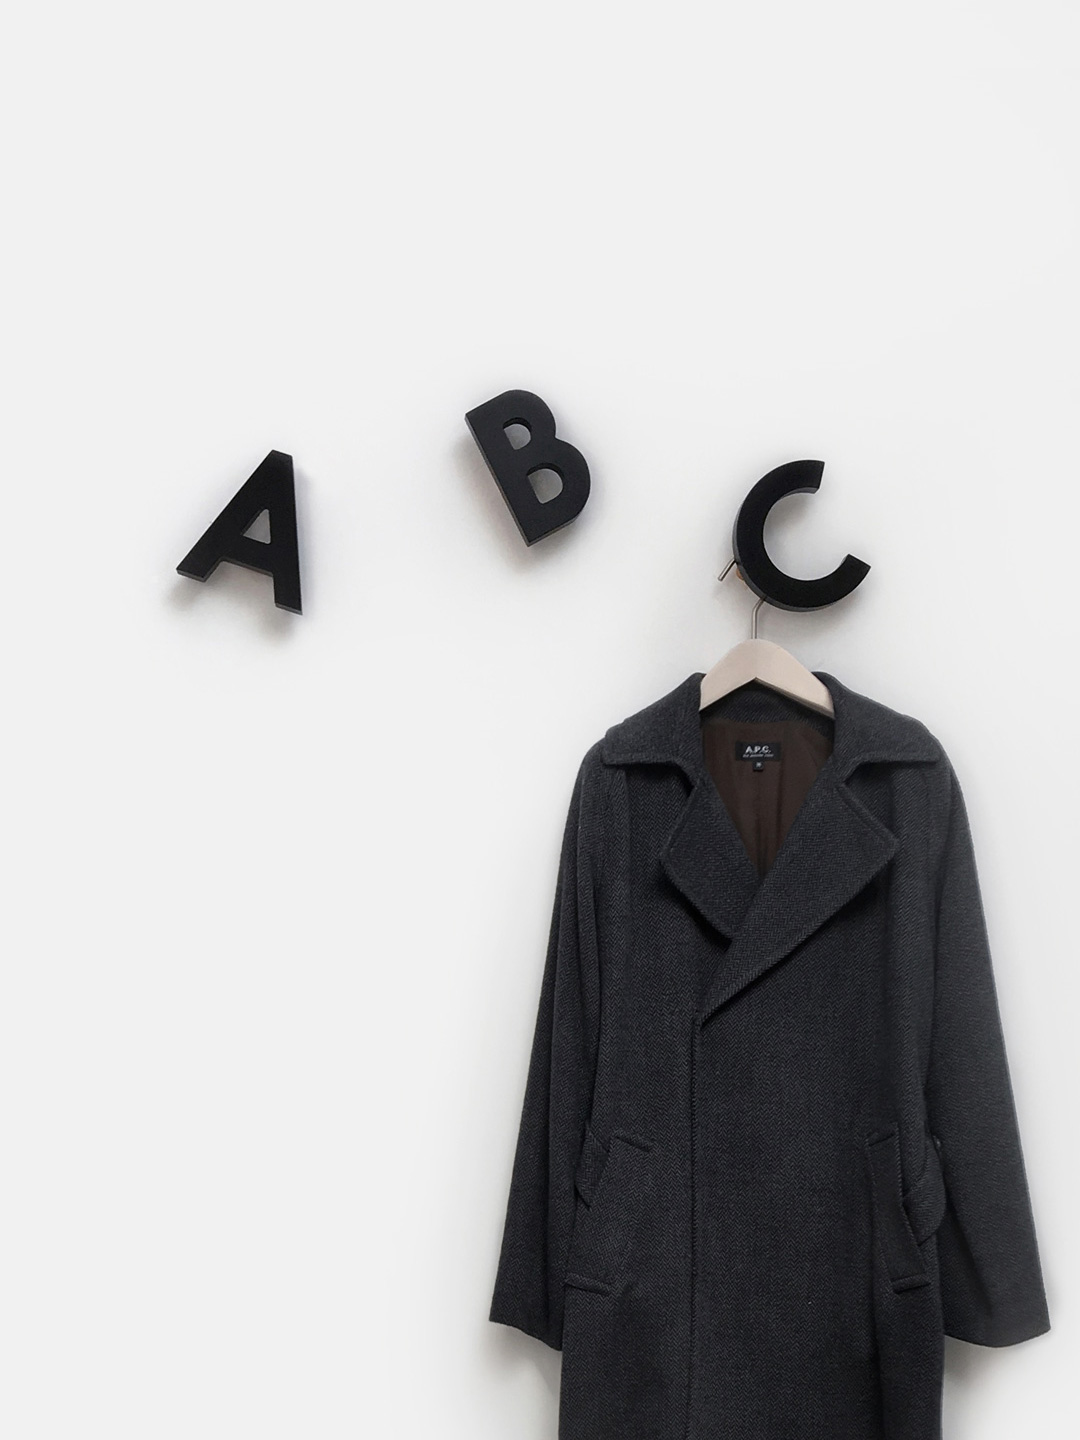 Alphabet Soup Wall hooks – ABC (Black)